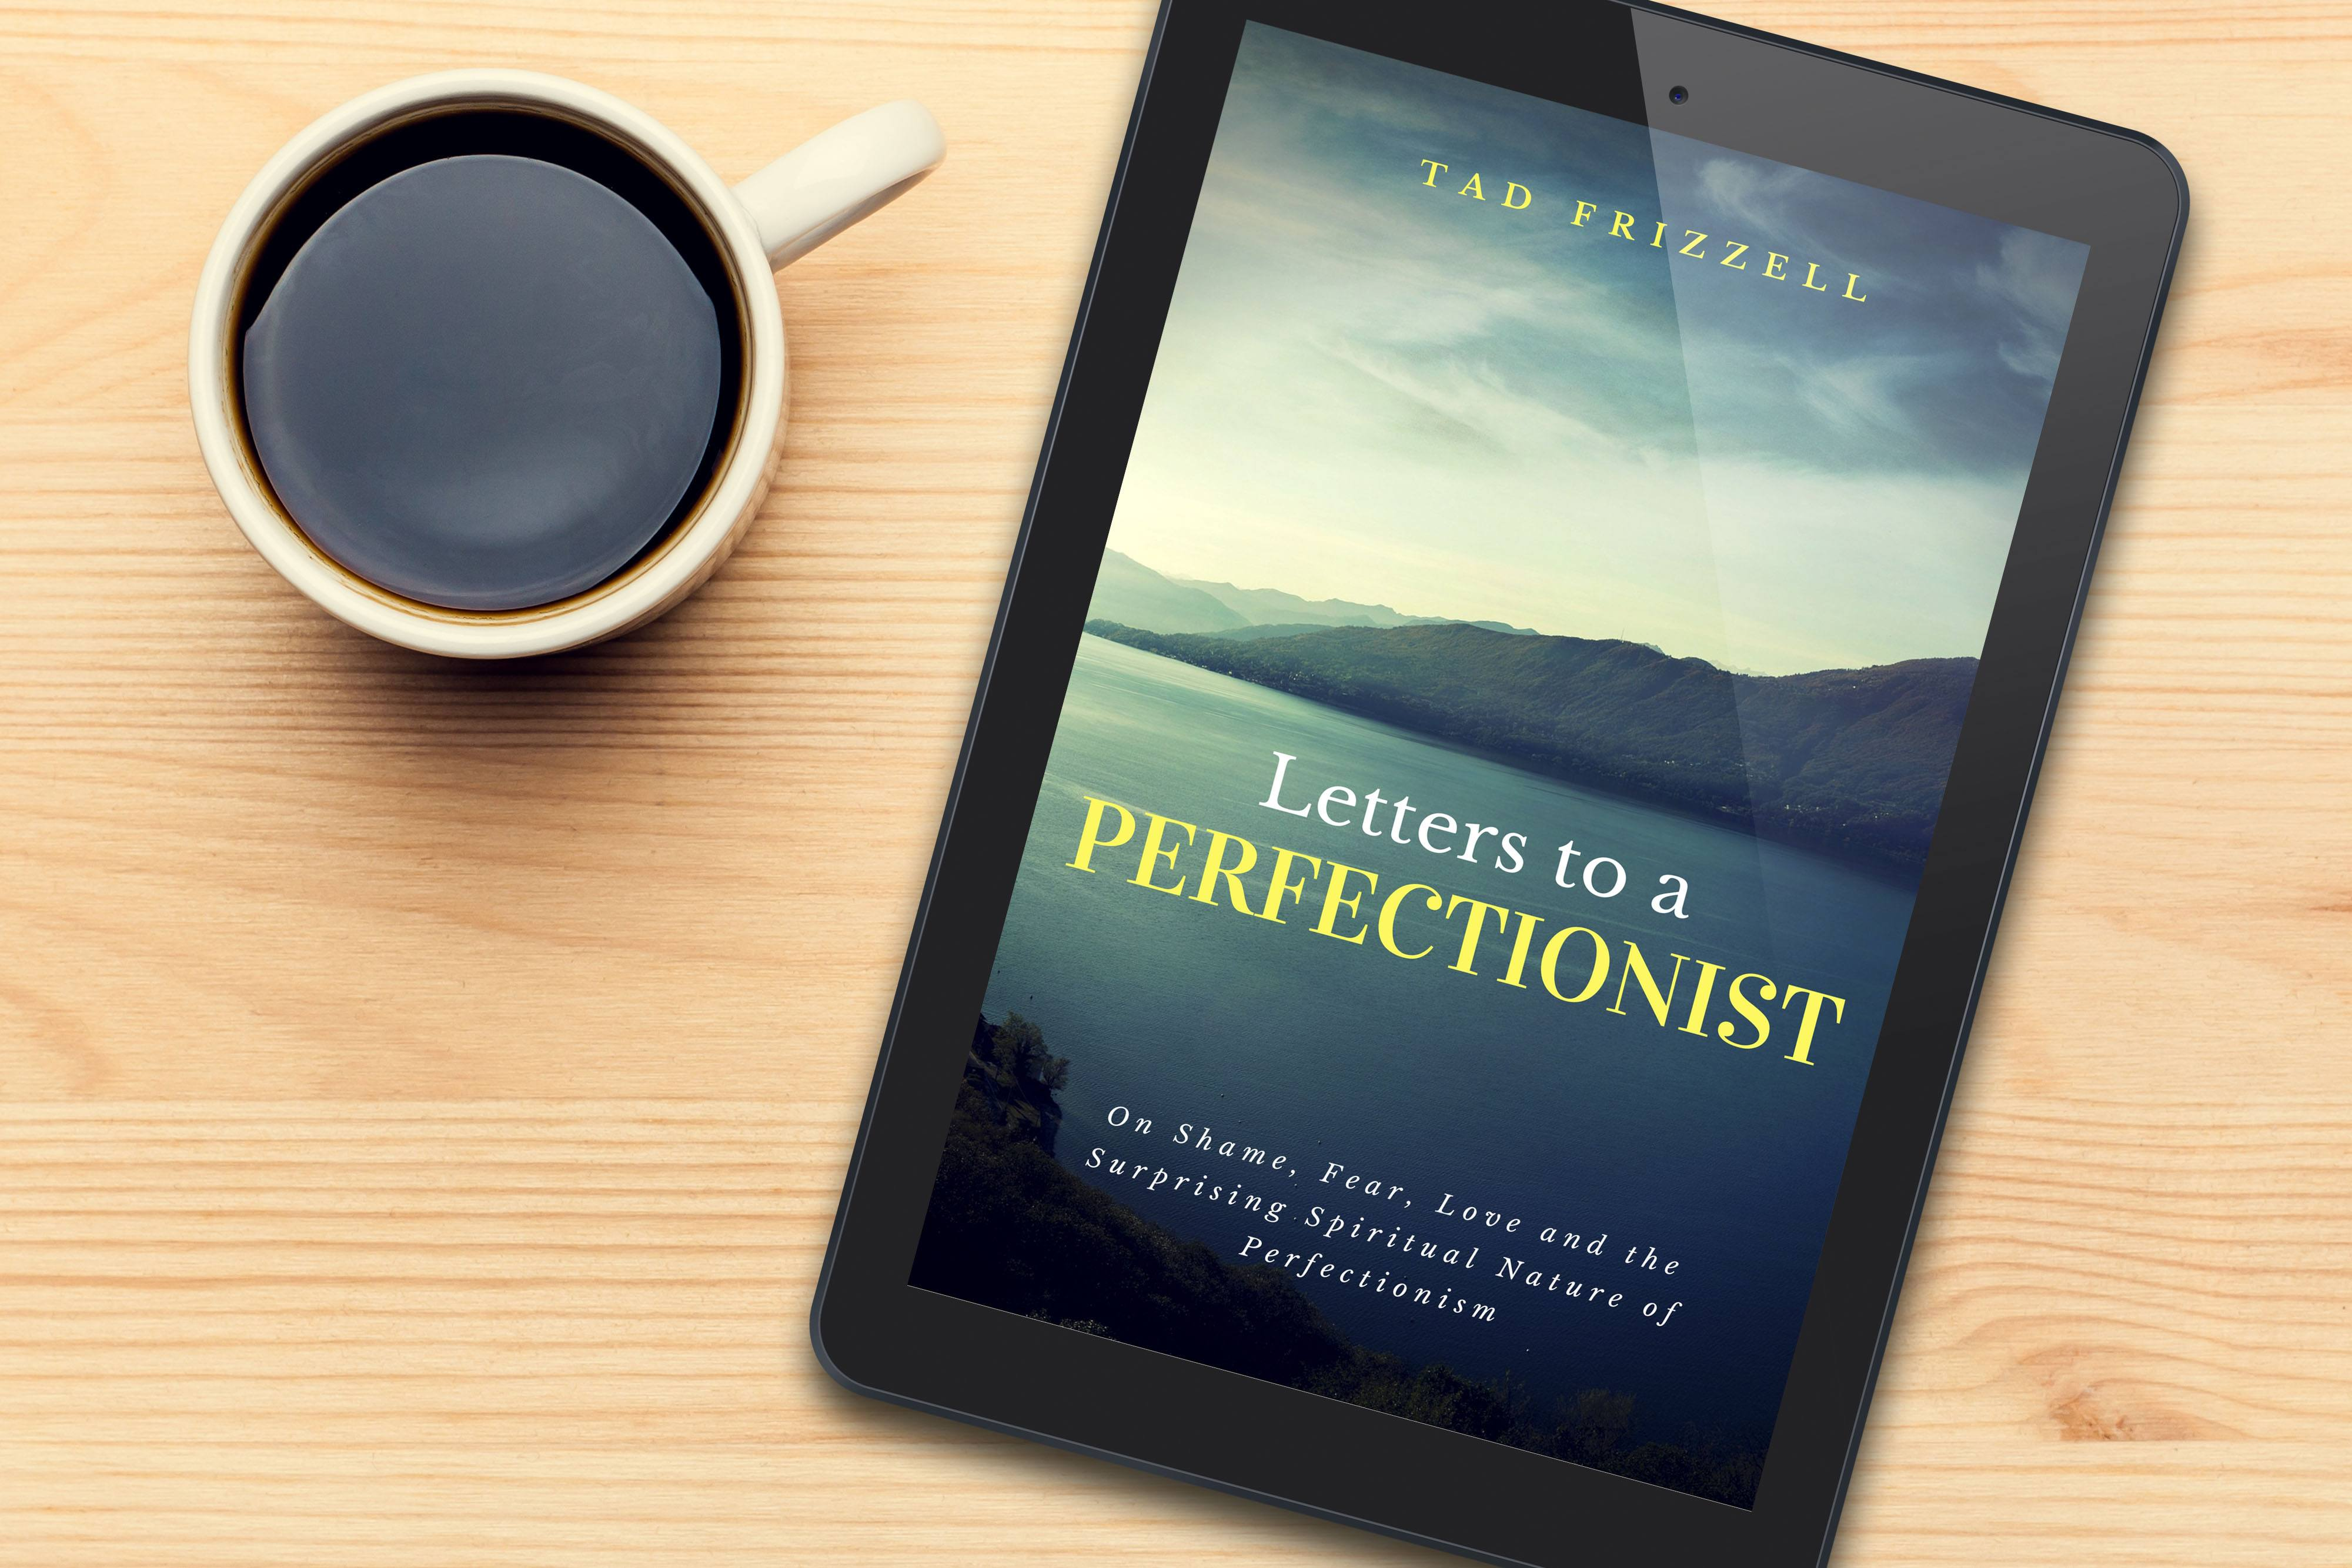 Letters to a Perfectionist: On Shame, Fear, Love, and the Surprising Spiritual Nature of Perfectionism